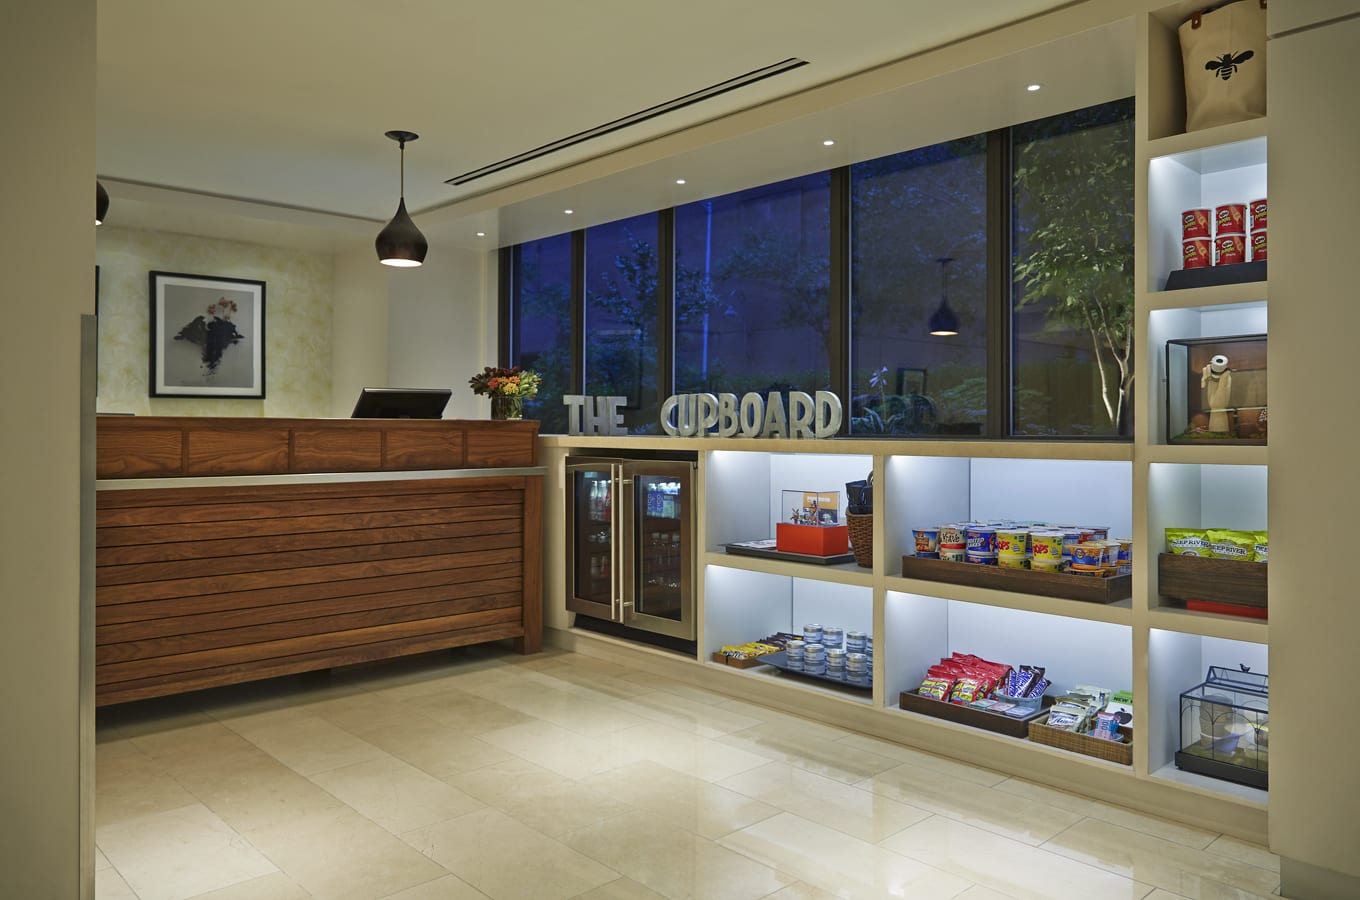 A view inside The Cupboard, a gift shop in Affinia Gardens Hotel. Various snacks and candies are placed on the shelves below and on the right. There is a set of decorative letters where the counter meets at the corner. It spells out